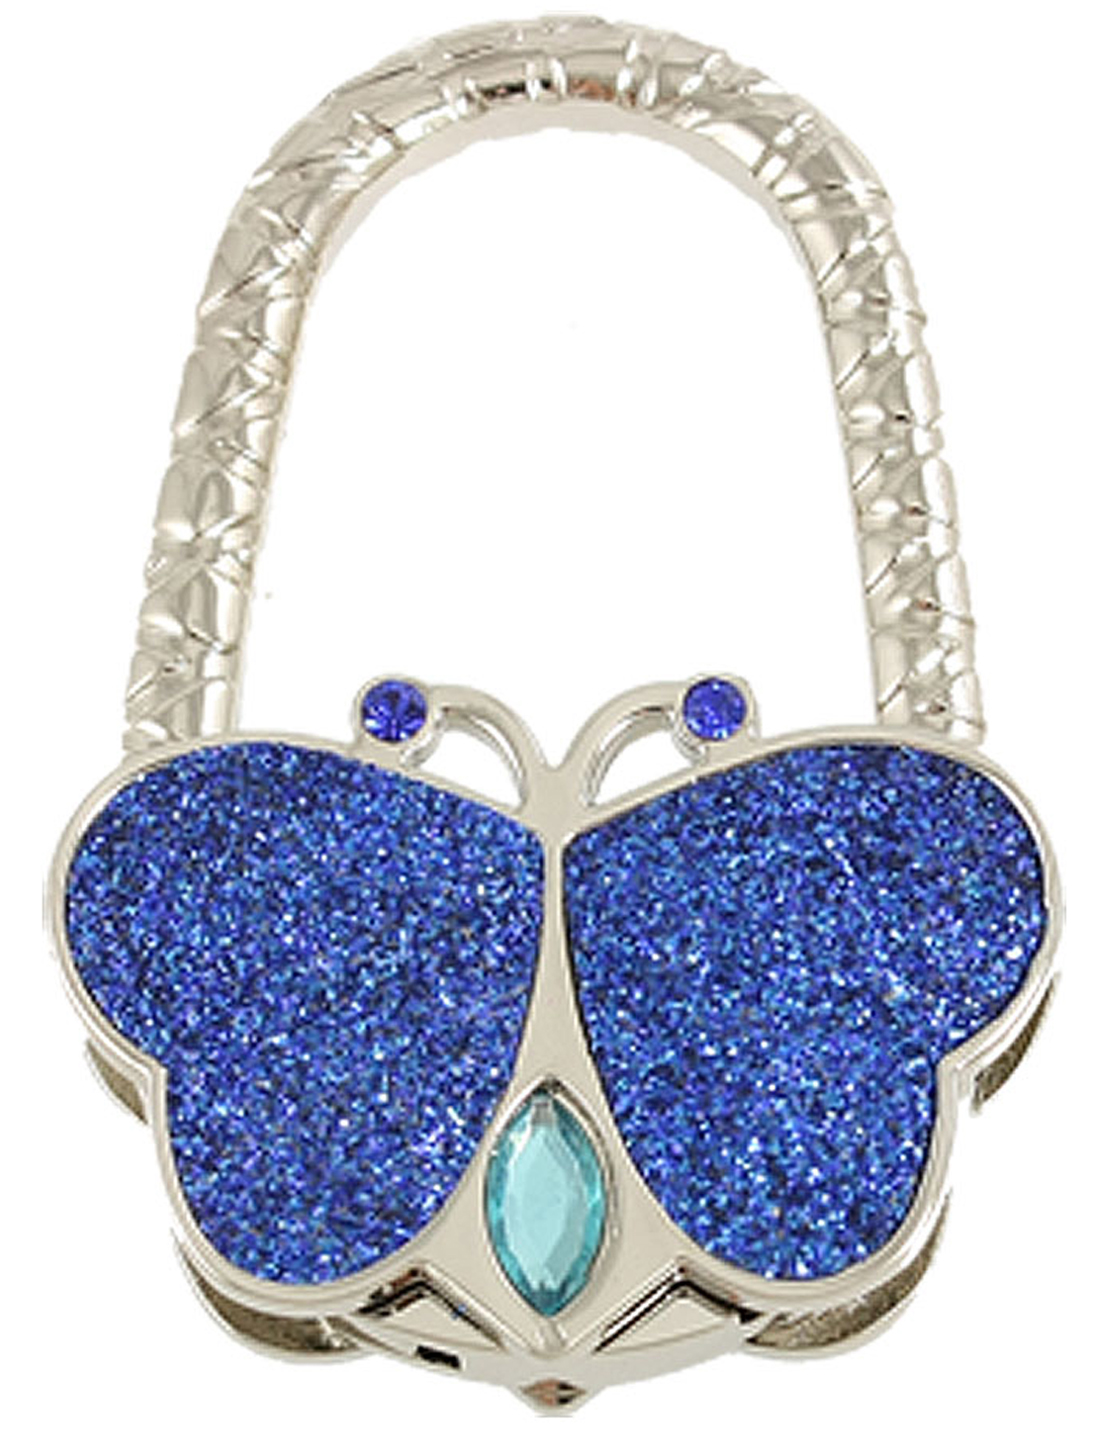 Plastic Rhinestone Accent Blue Butterfly Style Hanger Handbag Hook